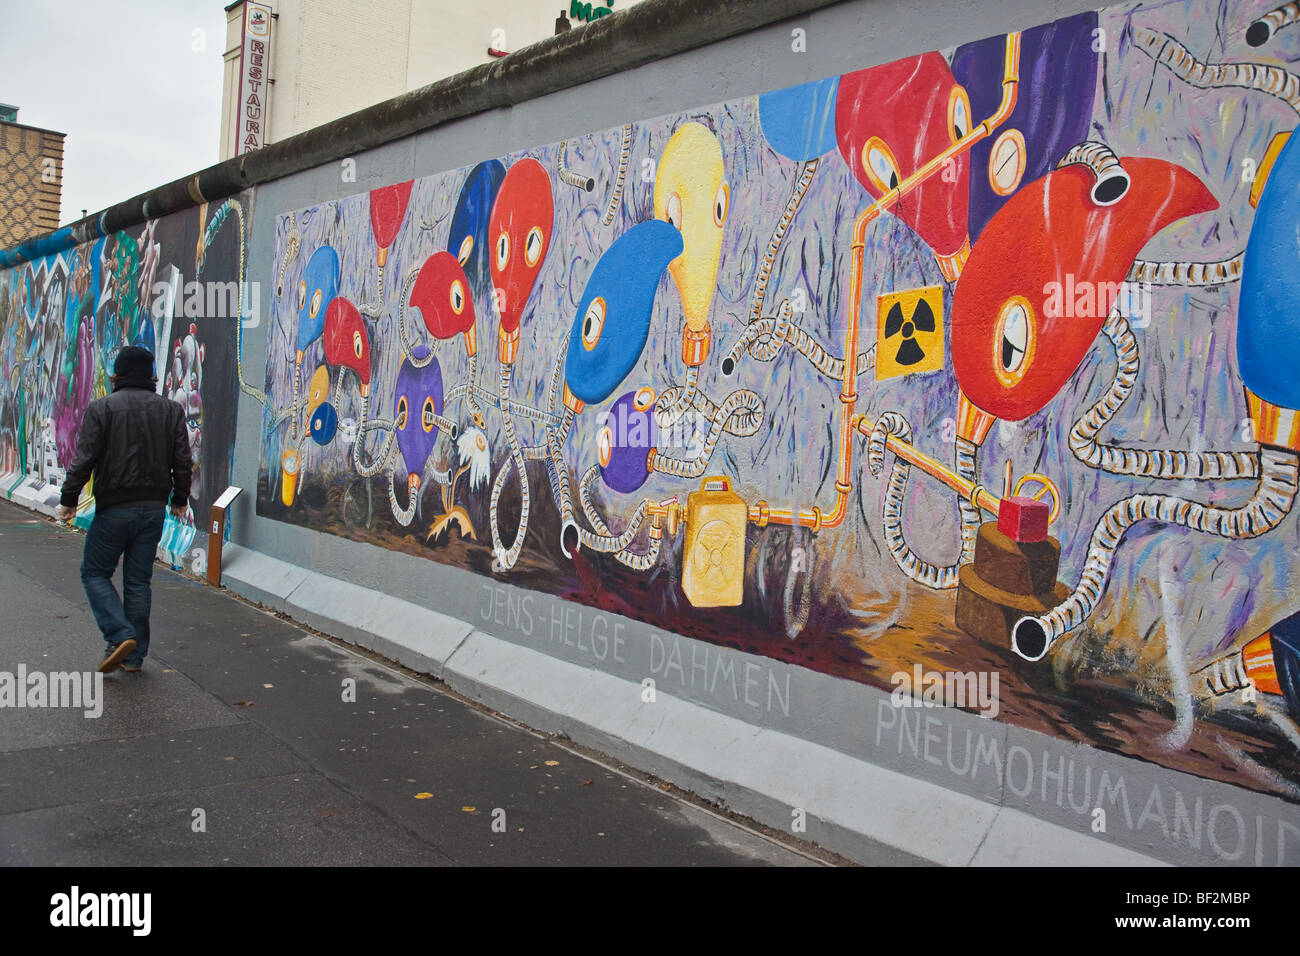 Newly repainted mural with a man walking past the Berlin Wall at East Side Gallery in Kreuzberg Berlin - Stock Image